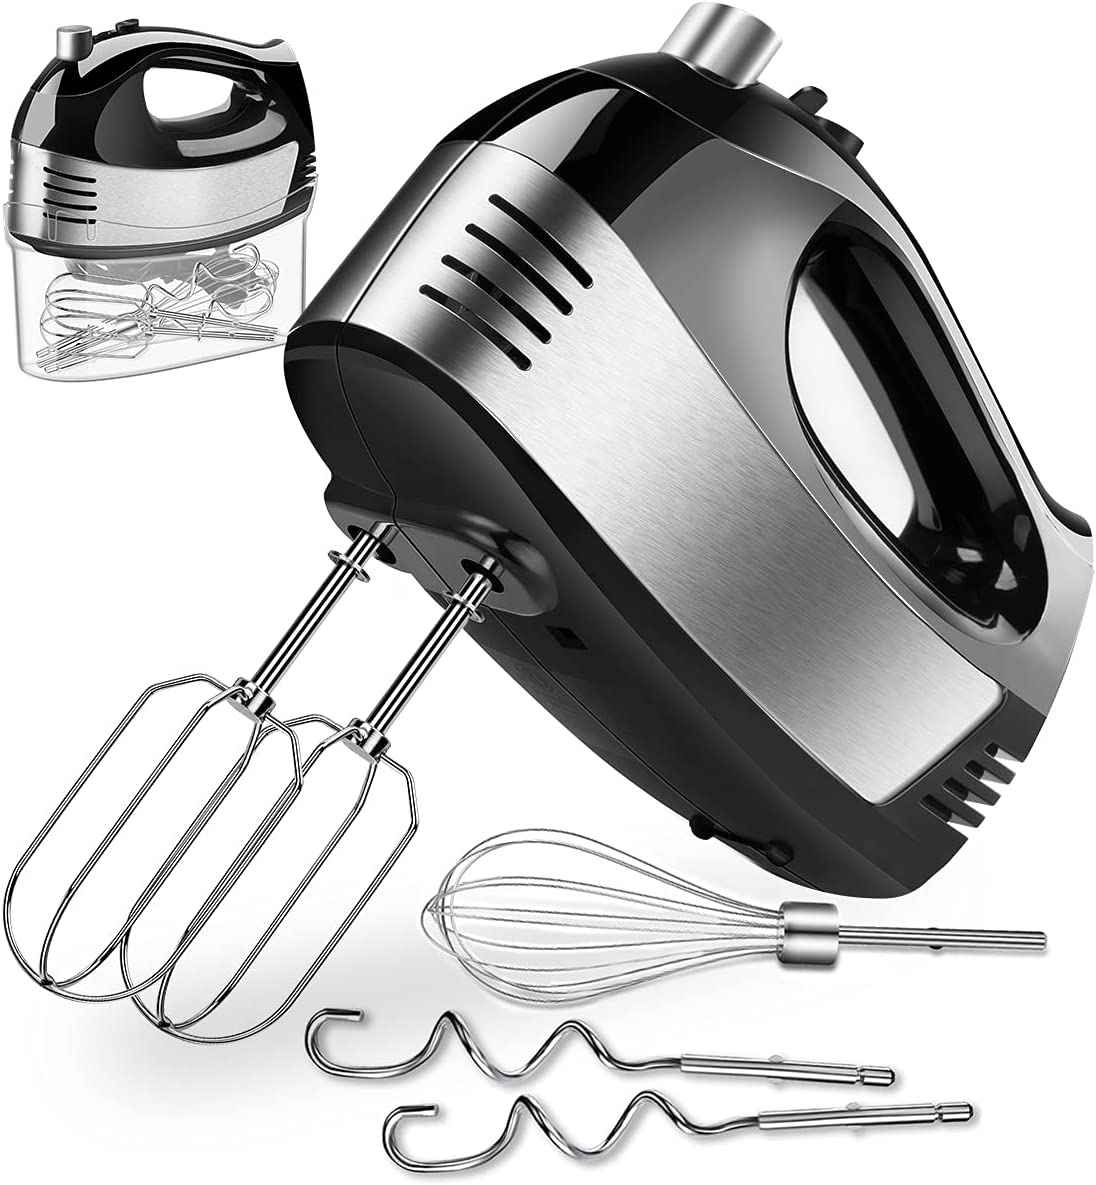 Hand Mixer Electric Easy-to-use Cusinaid Turbo Indianapolis Mall 5-Speed with